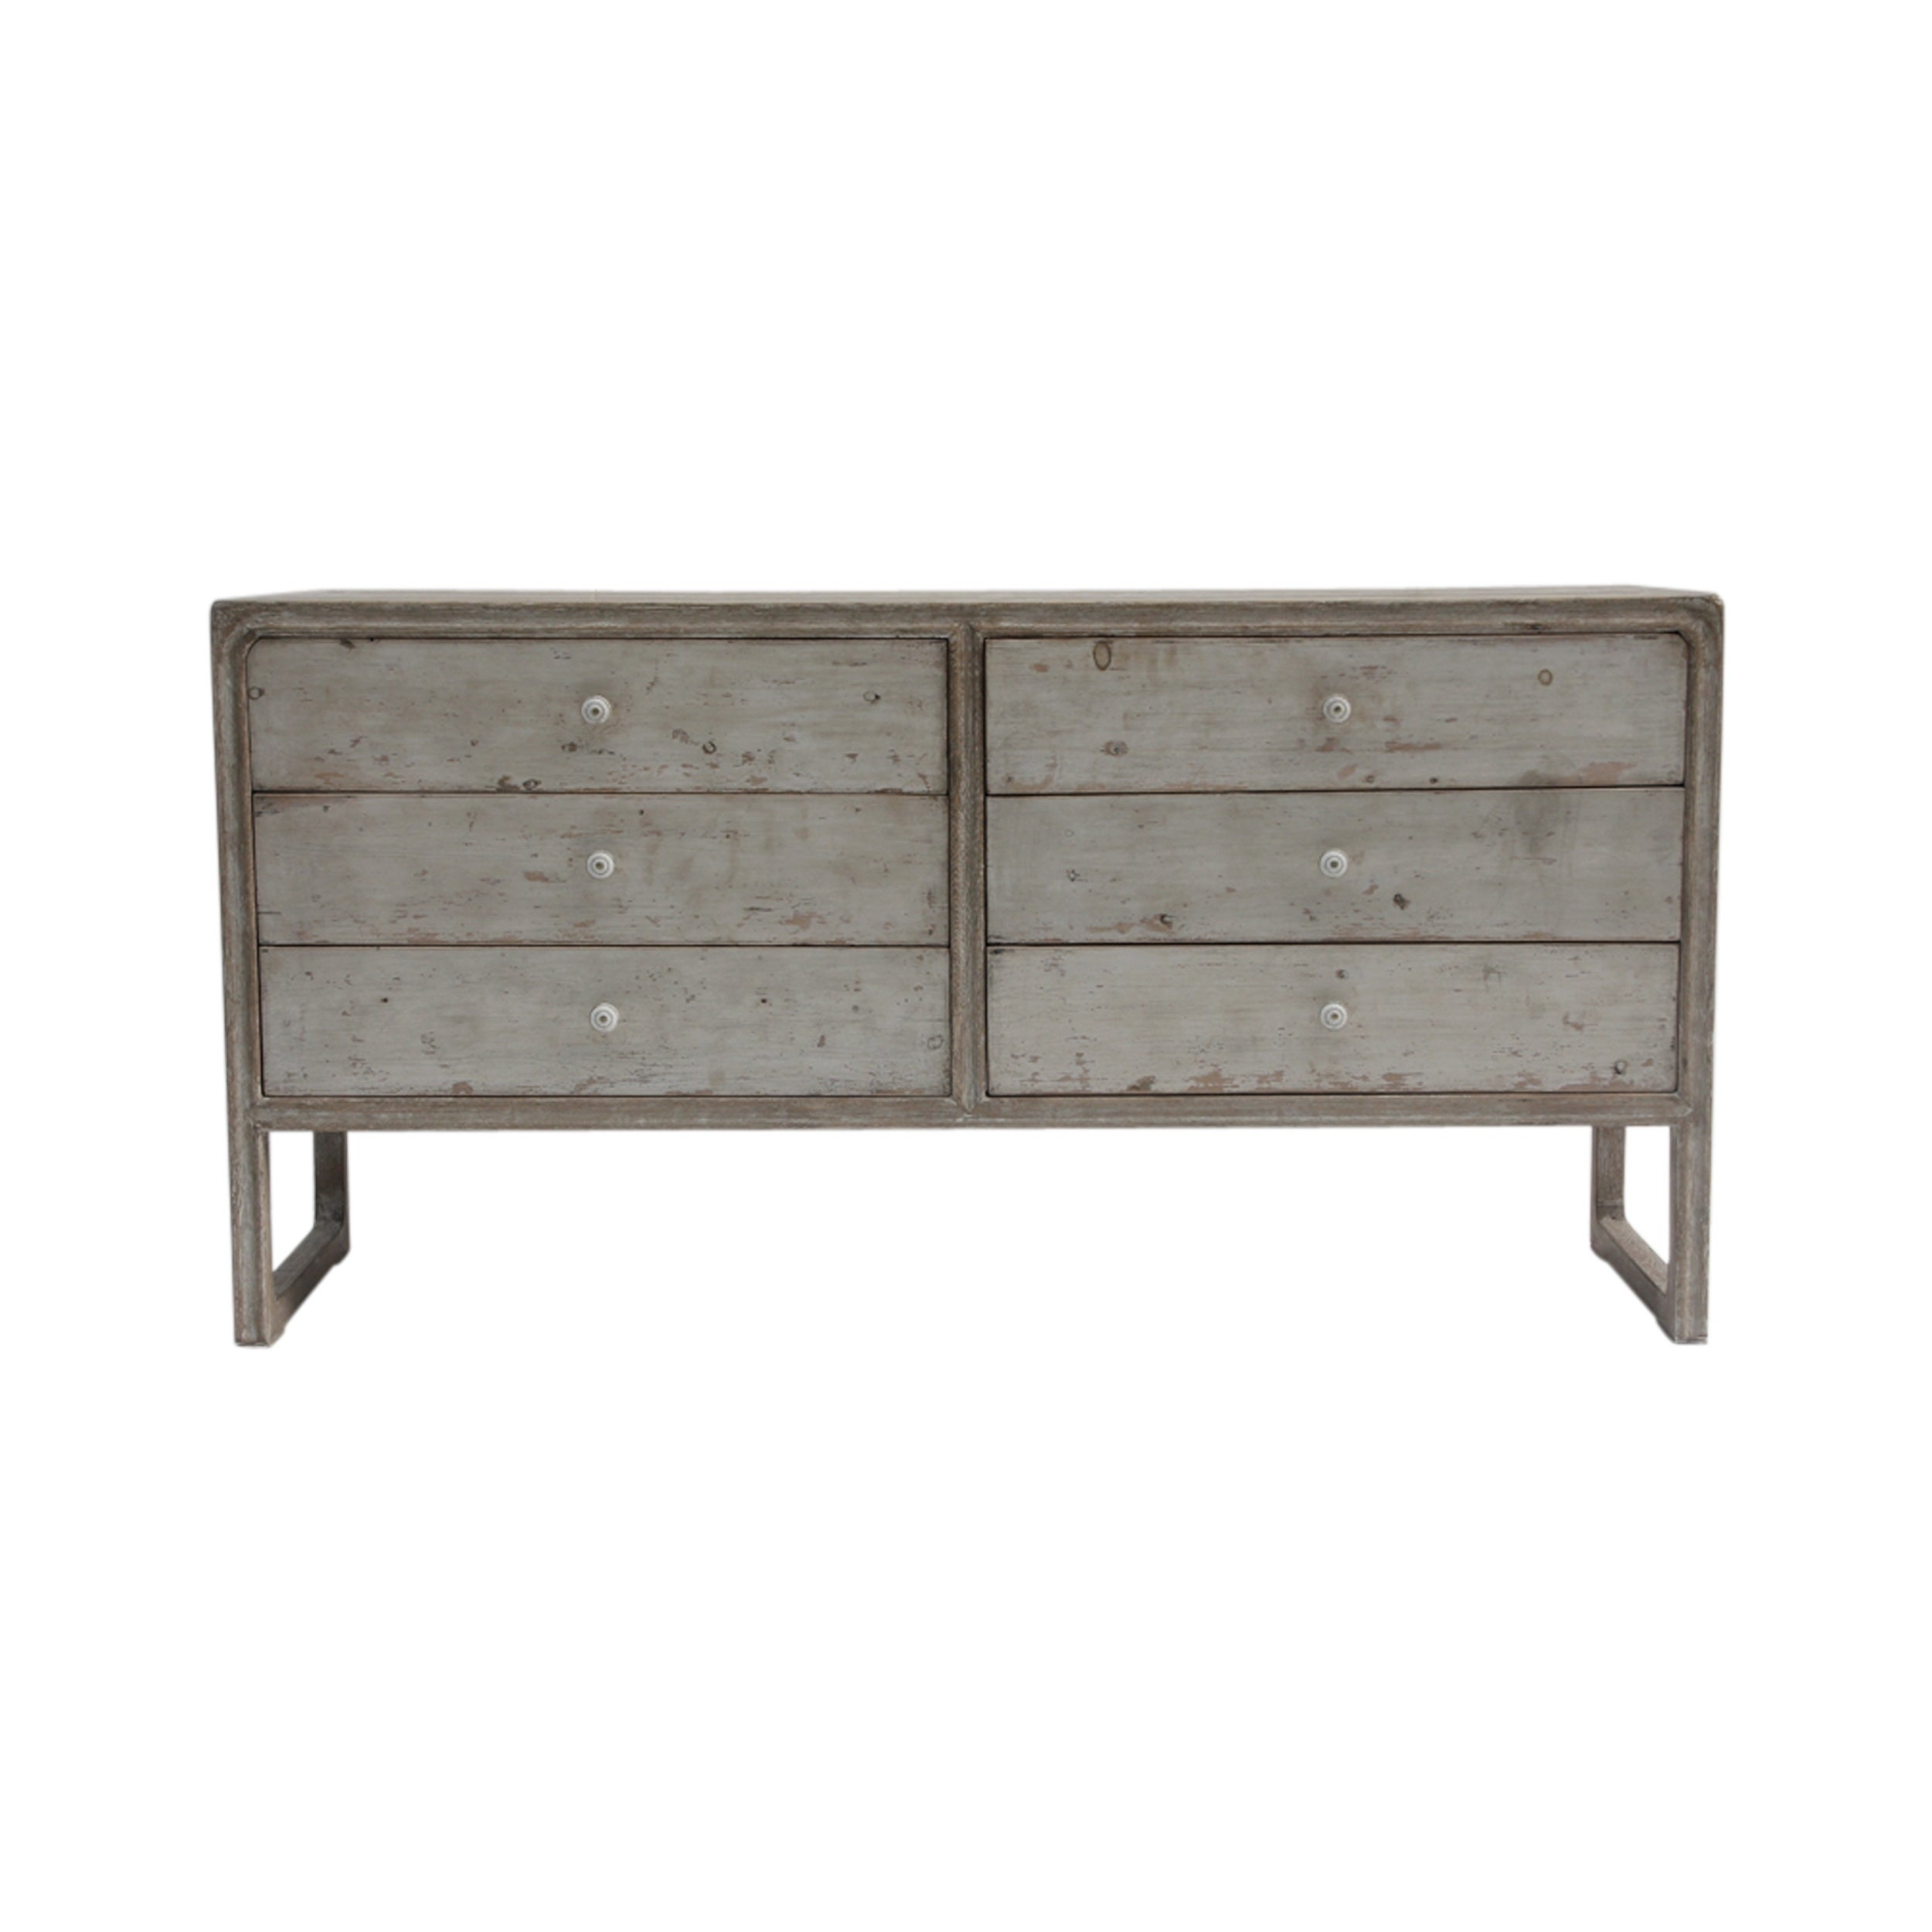 Lily S Living Reclaimed Wood Peking Side Table With 6 Drawers Antique Off White Finish 31 Inch Tall